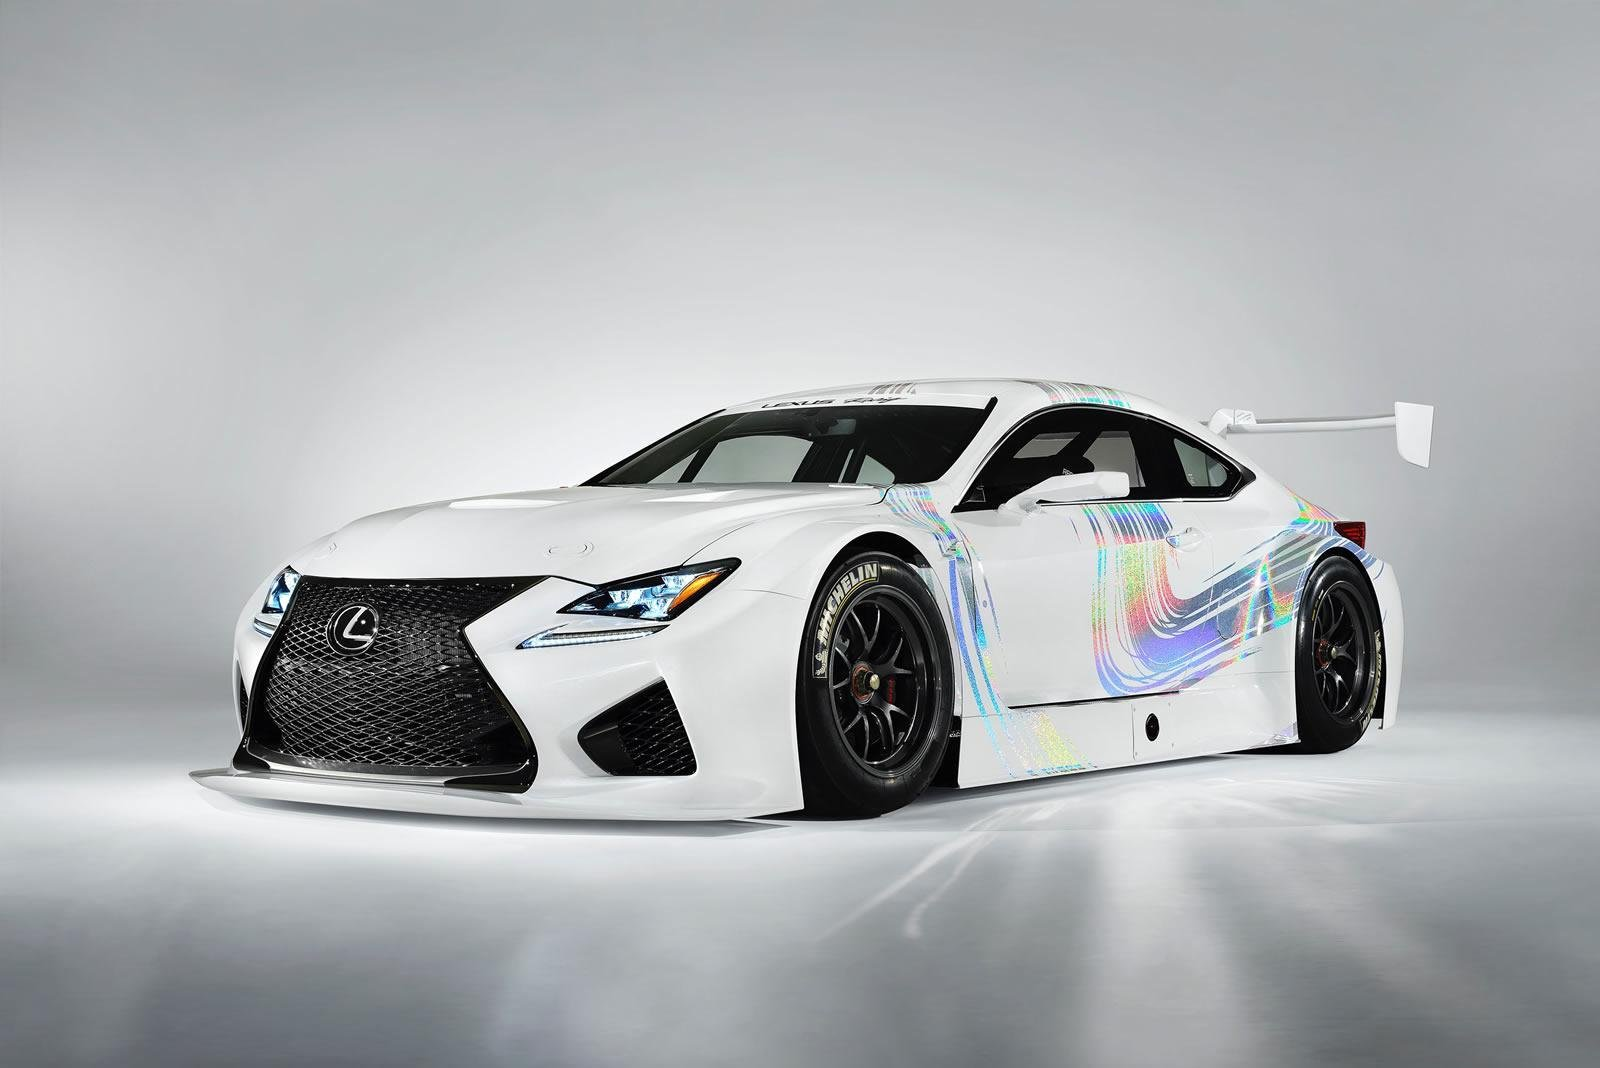 2015 lexus rc f gt3 concept review top speed. Black Bedroom Furniture Sets. Home Design Ideas